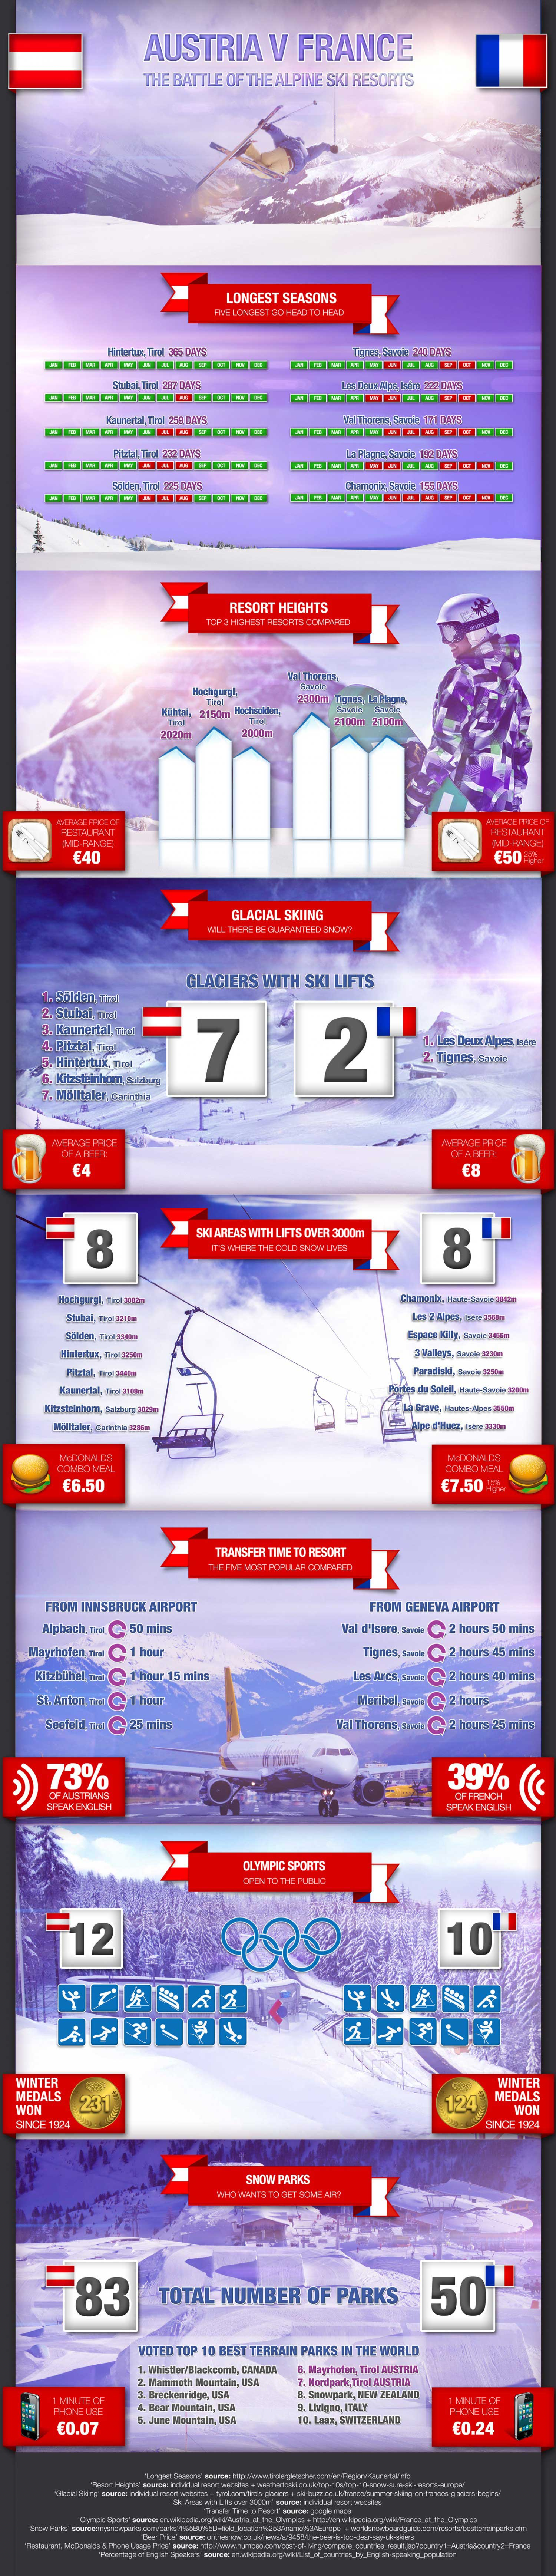 Original image found here: http://visual.ly/austria-v-france-how-skiing-and-snowboarding-stack